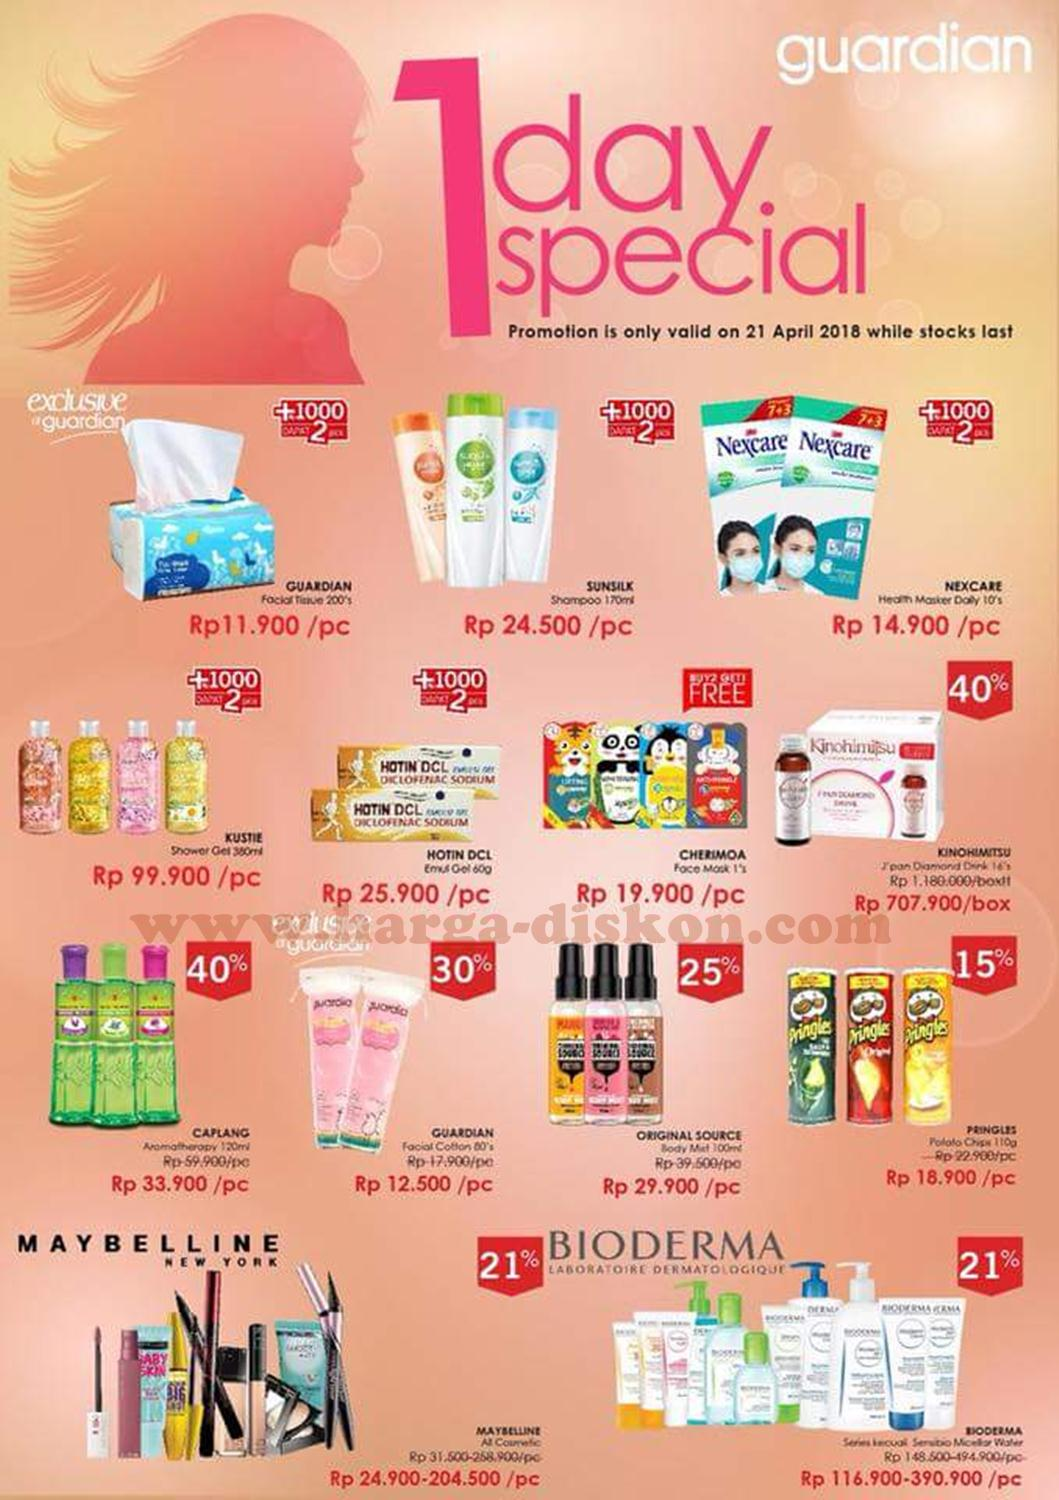 Promo Guardian Terbaru 1 Day Special Periode 21 April 2018 Harga Promo